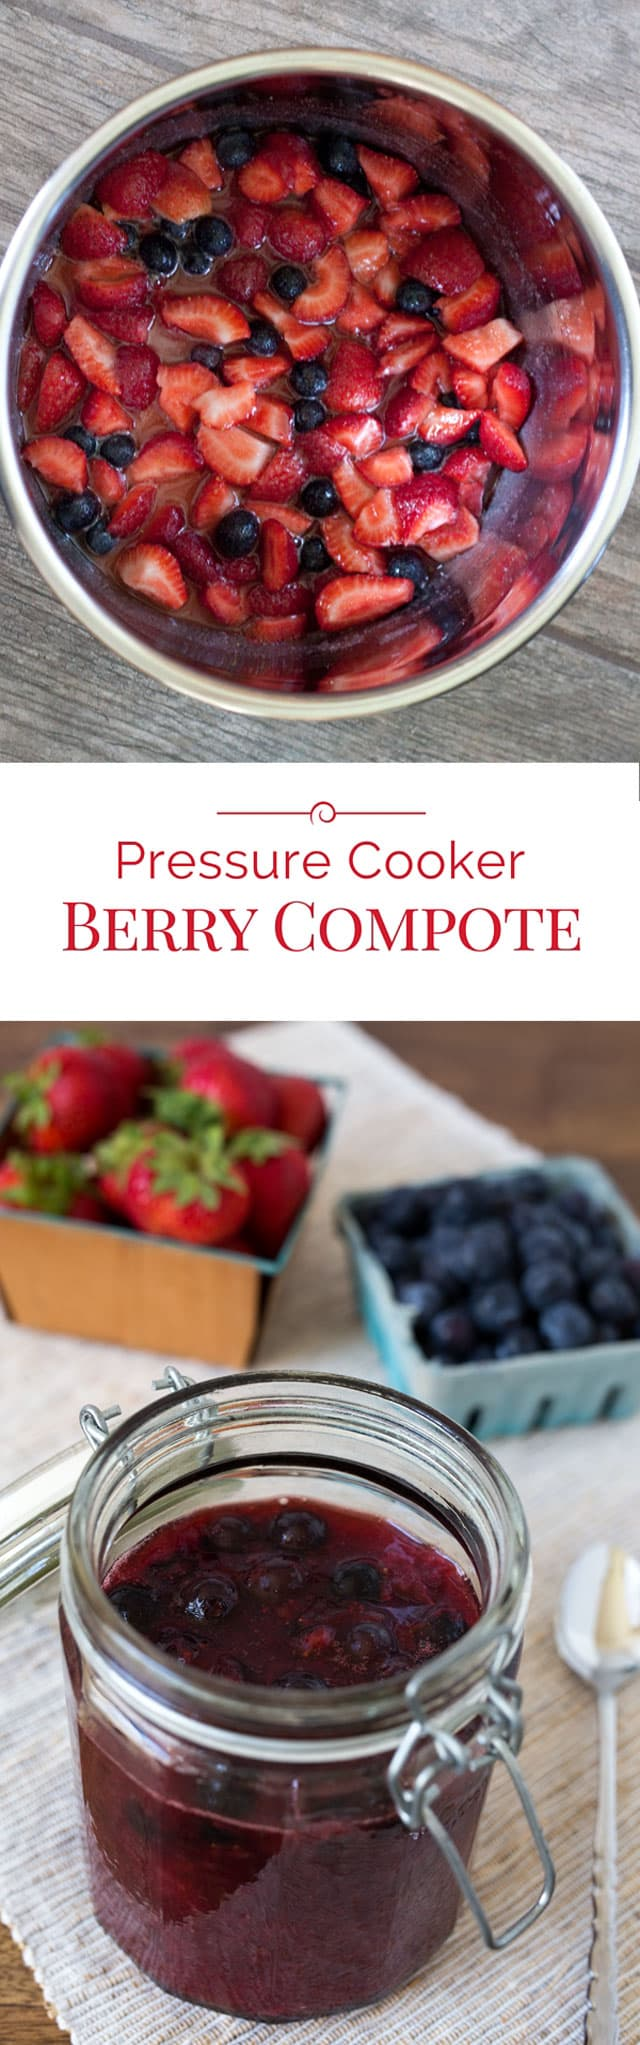 titled photo collage - Pressure Cooker Berry Compote